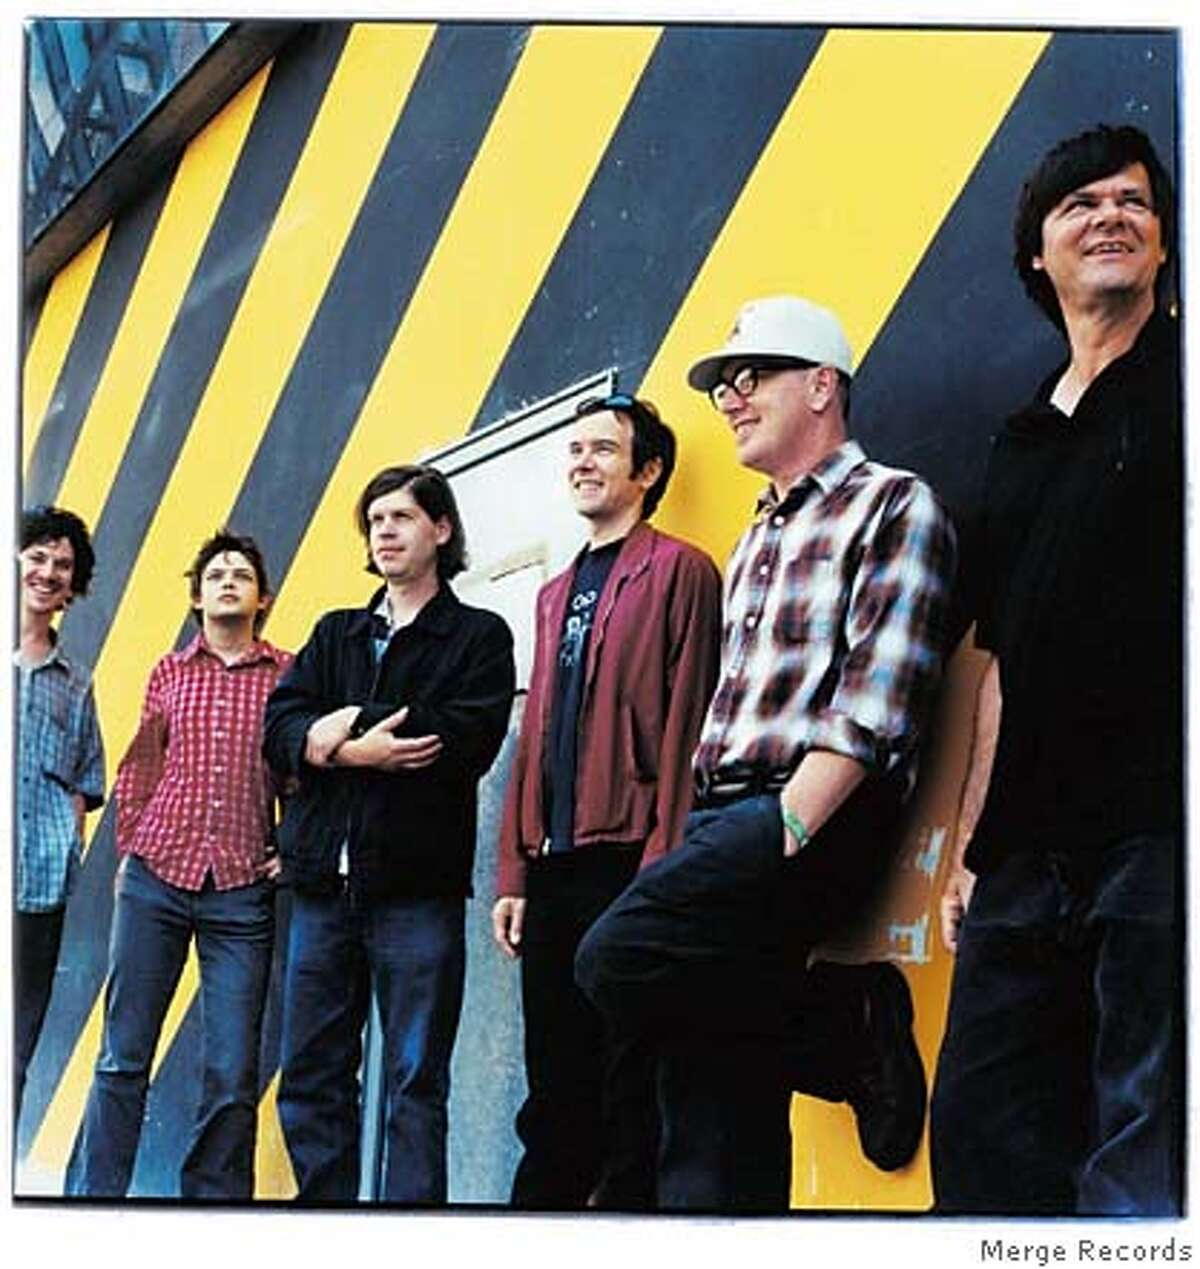 Handout art of the band Lambchop. They have a new album out called Damaged